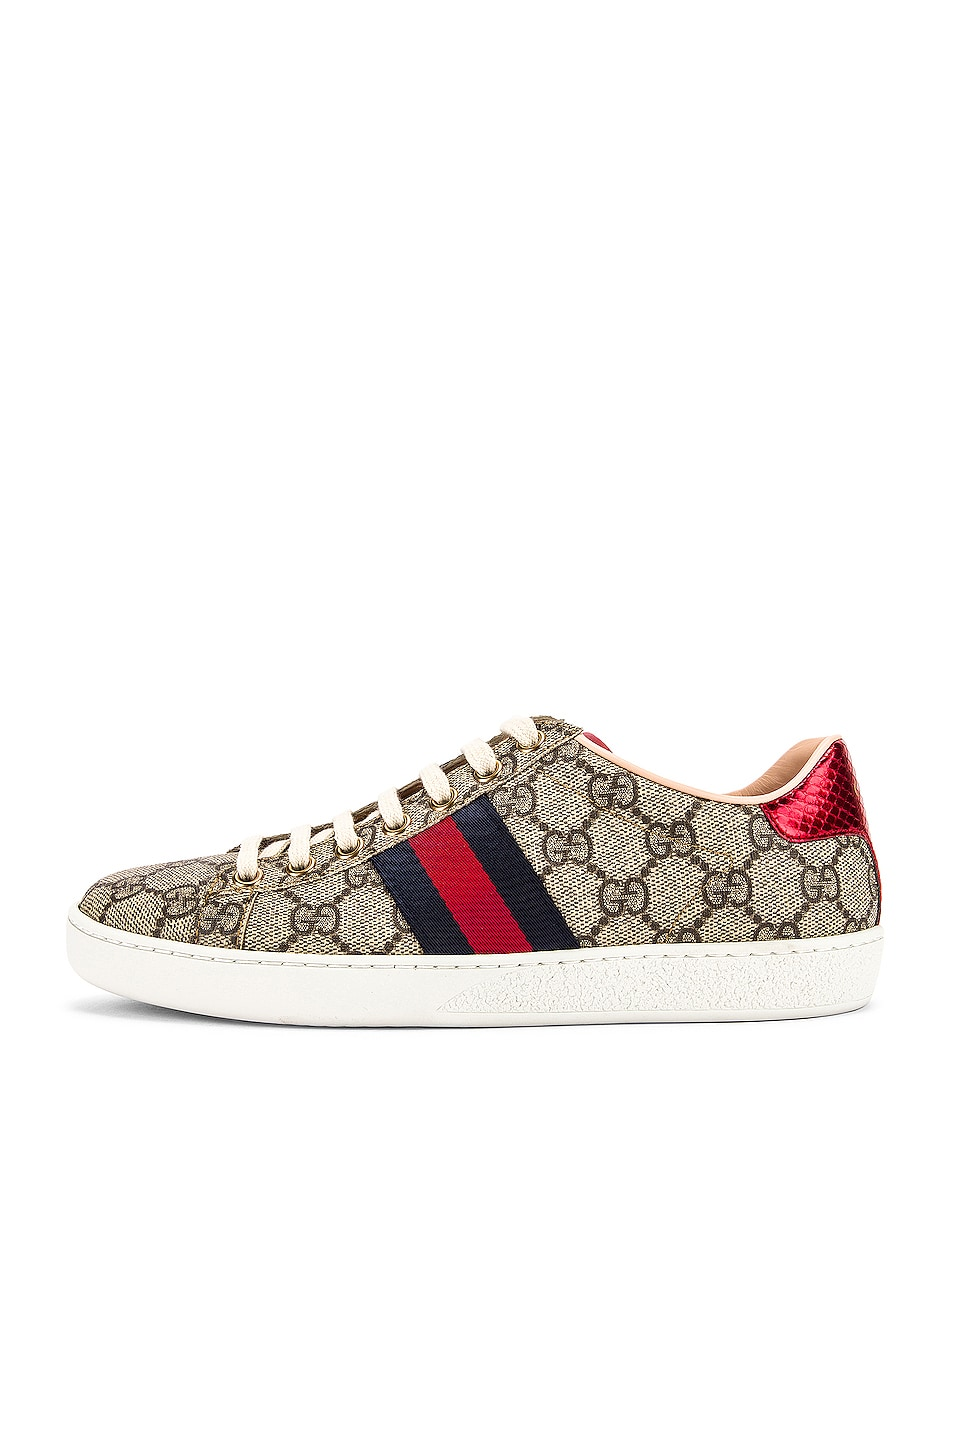 Image 8 of Gucci New Ace GG Sneakers in Beige Ebony & Red